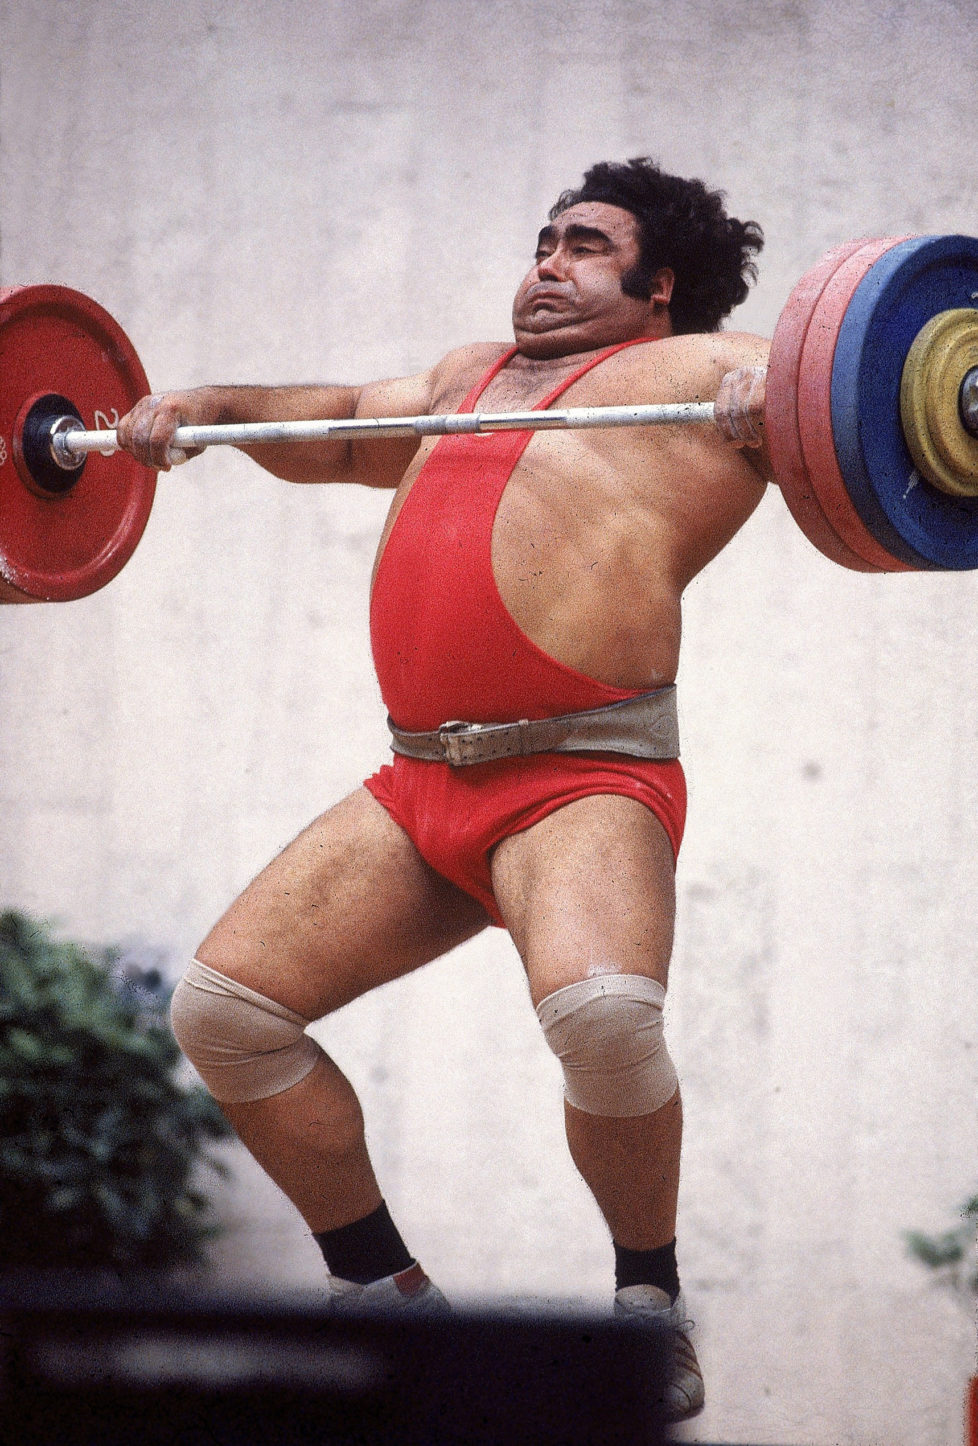 UNSPECIFIED - JULY 19: Weightlifting: 1980 Summer Olympics, USR Vasily Alexeyev in action during +242,5 lb event, Moscow, USR 7/19/1980--8/3/1980 (Photo by Jerry Cooke/Sports Illustrated/Getty Images) (SetNumber: X24706 TK7 R6 F17)